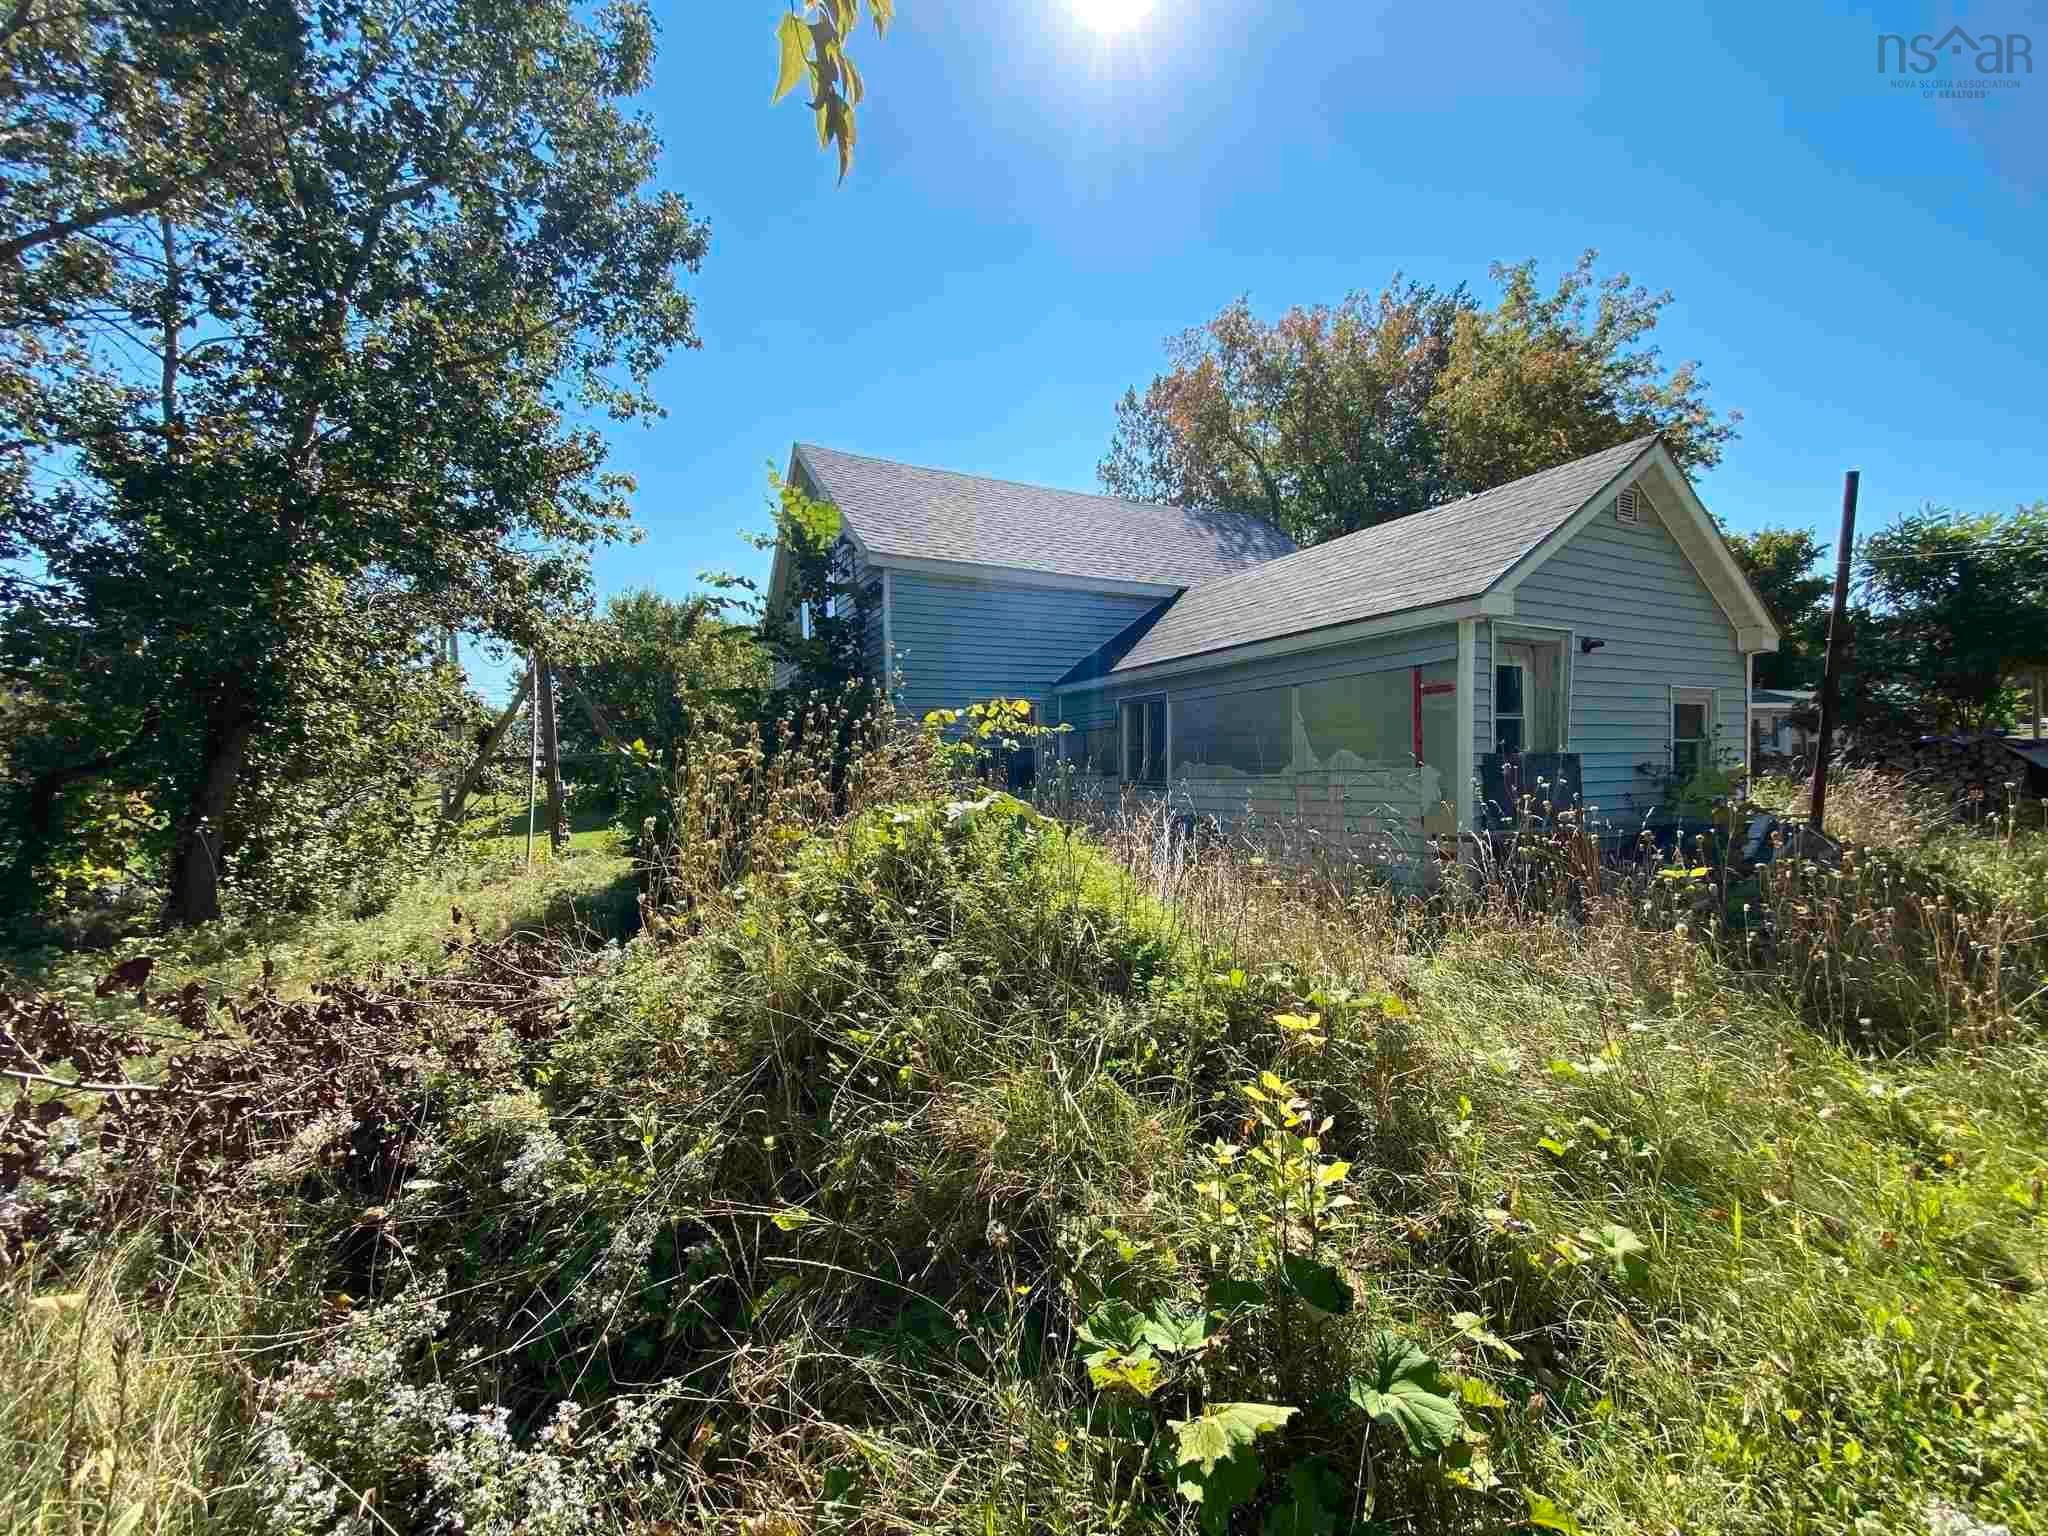 Main Photo: 507 Thorburn Road in Thorburn: 108-Rural Pictou County Vacant Land for sale (Northern Region)  : MLS®# 202124108